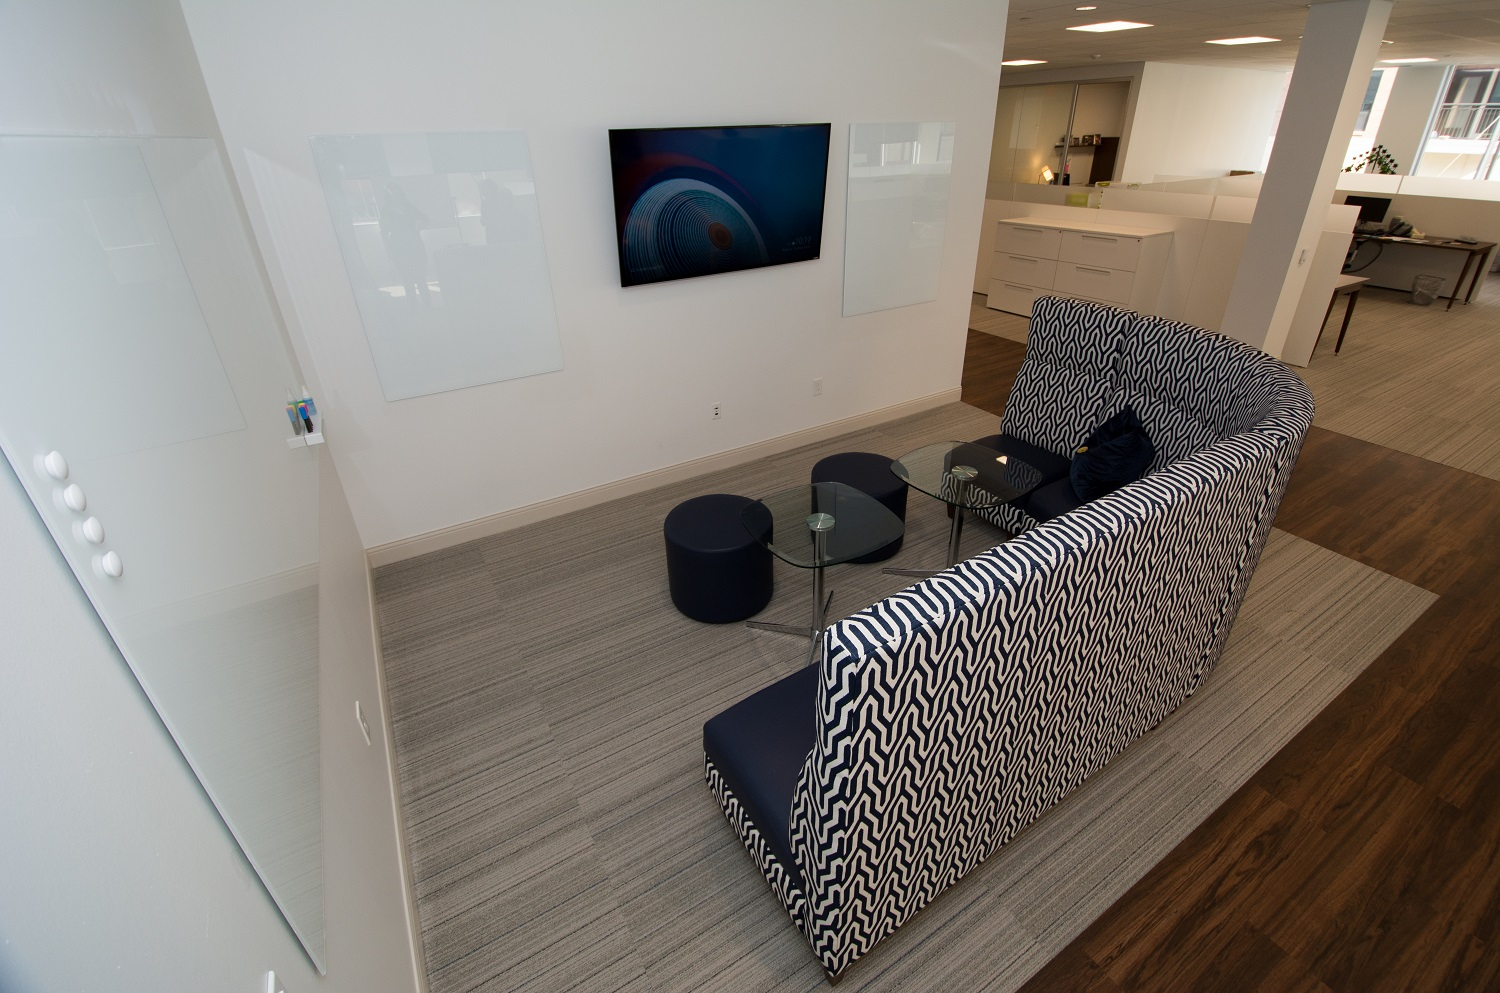 """This huddle space, defined by the extended height of the l-shaped couch, offers multiple whiteboards as well as a variety of inputs for display on the 60"""" TV screen."""